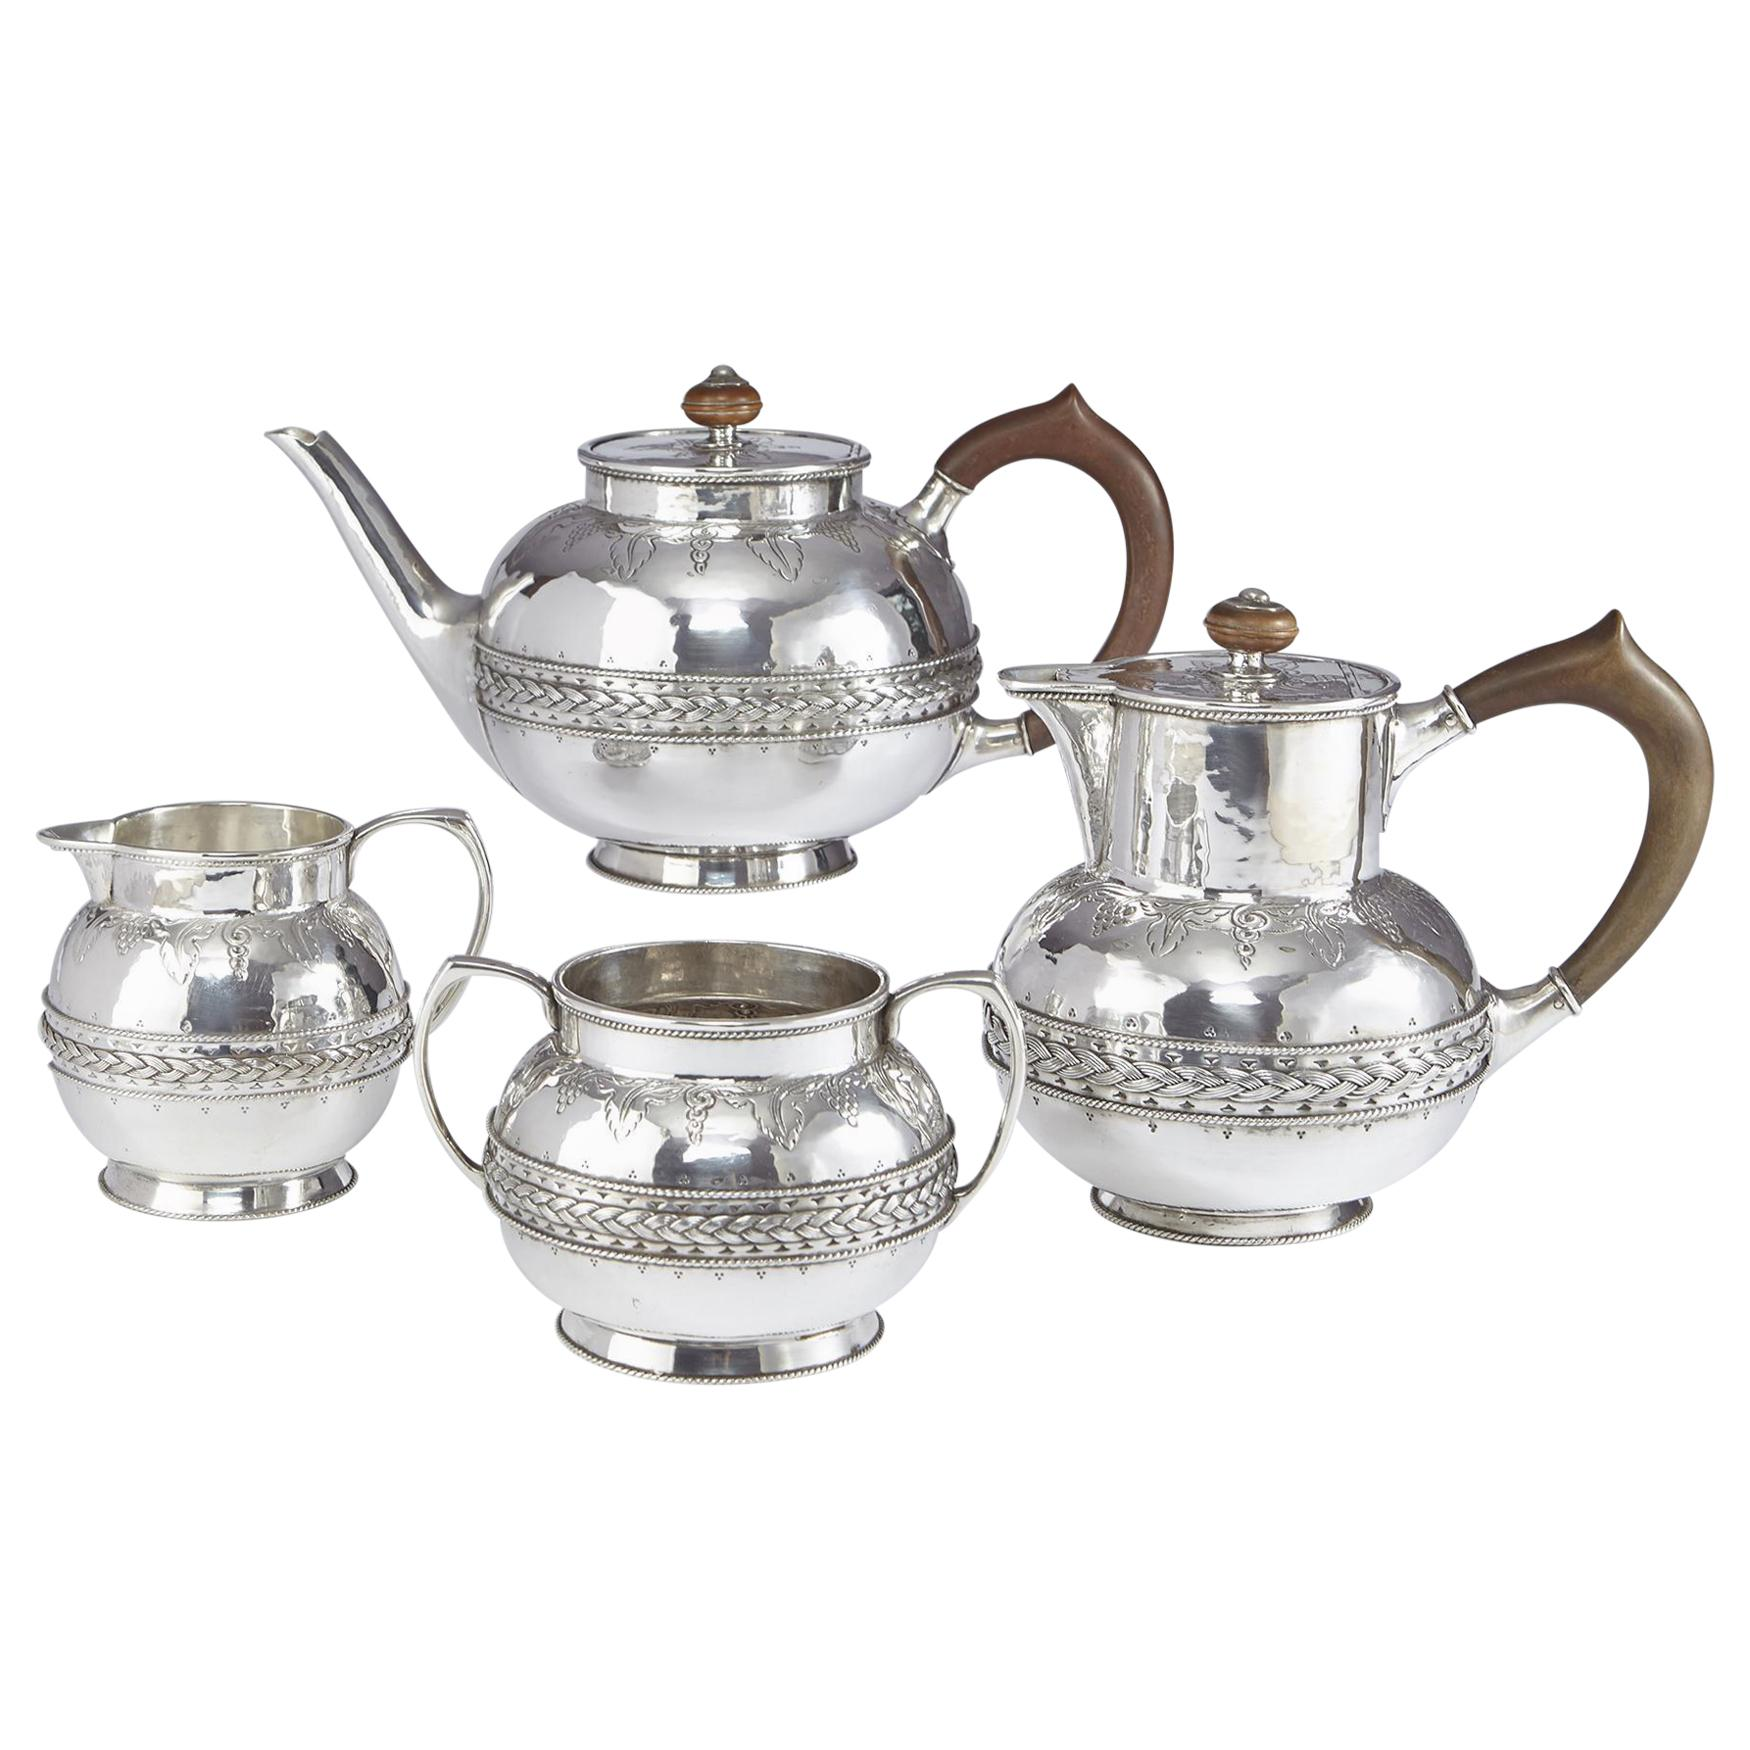 4-Piece Silver Tea and Coffee Set by Liberty